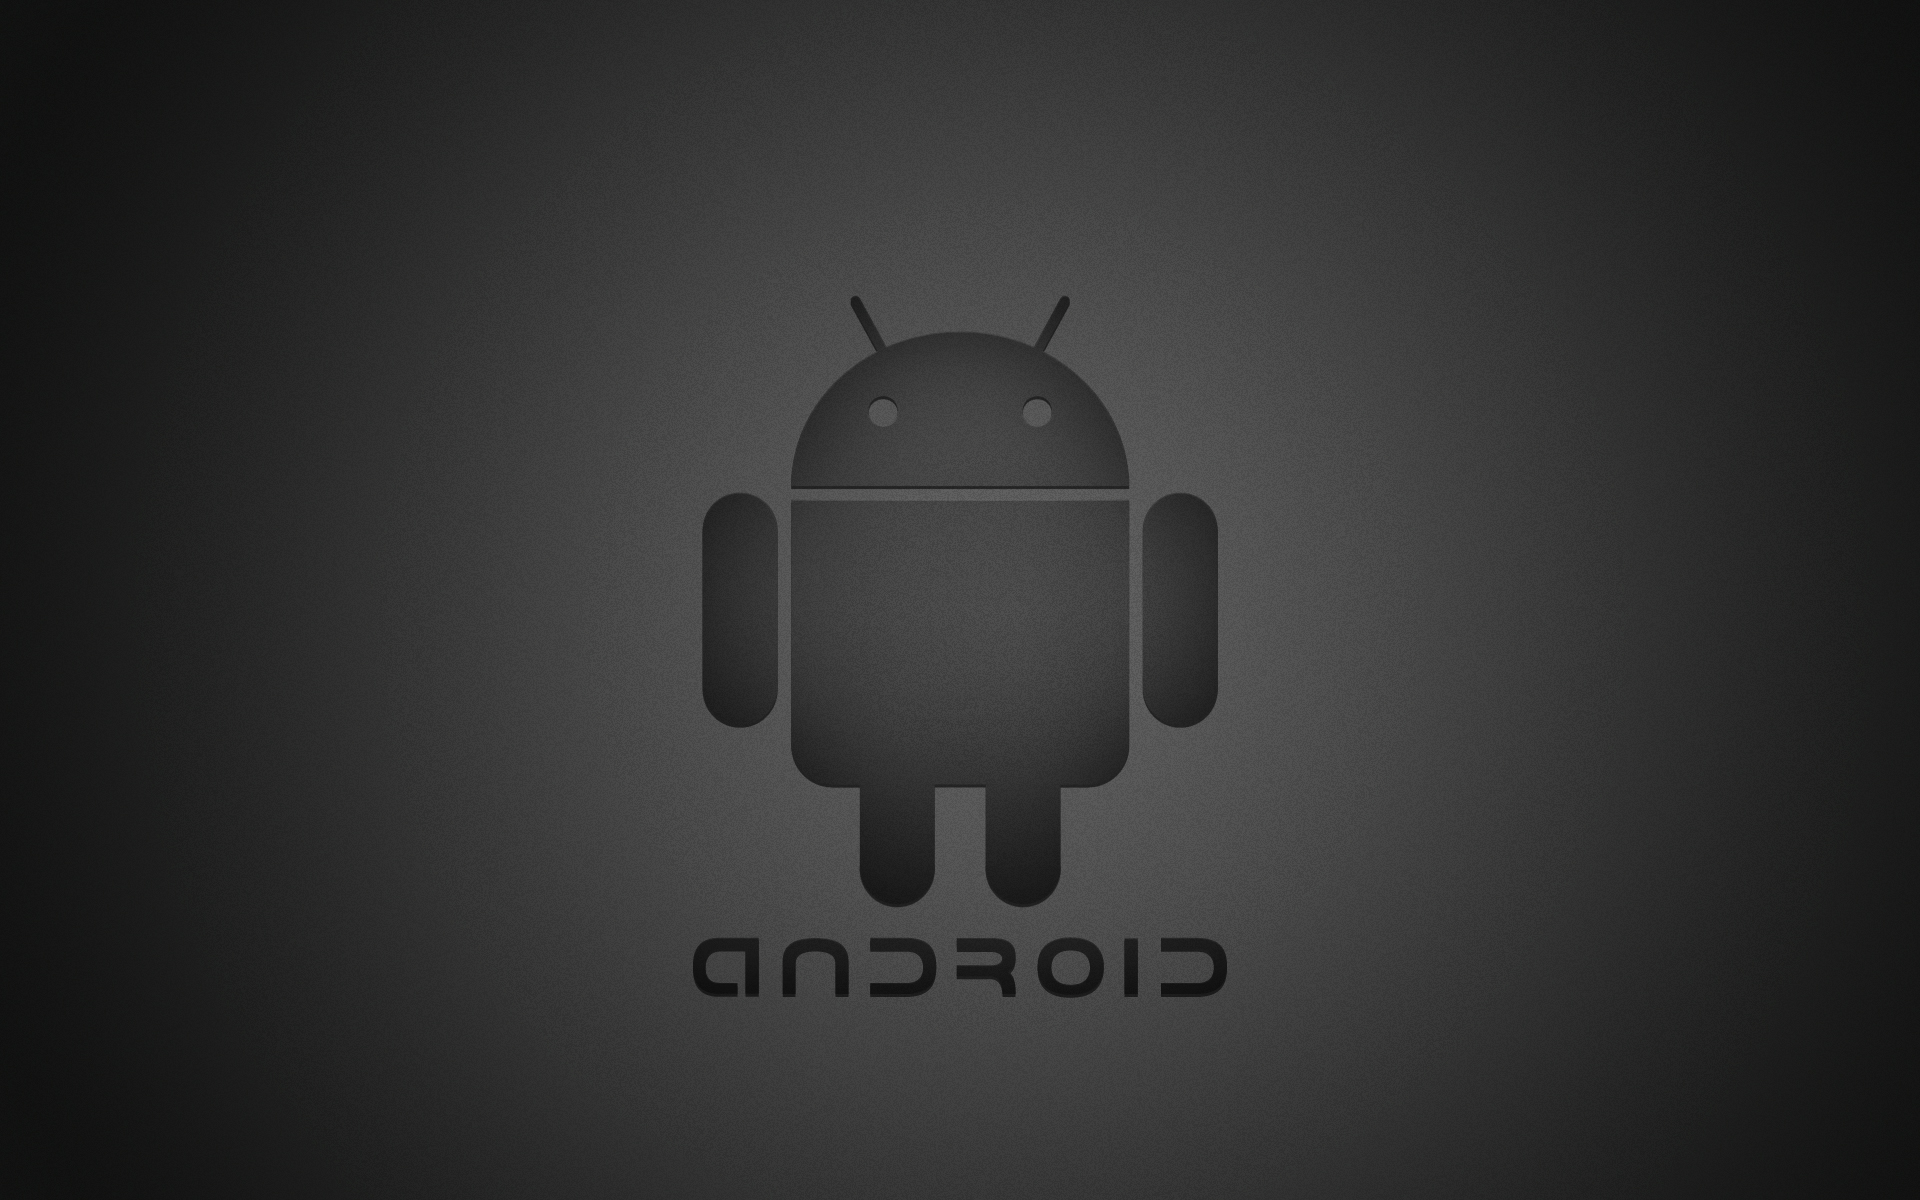 AW Android Desktop Wallpaper 1920x1200